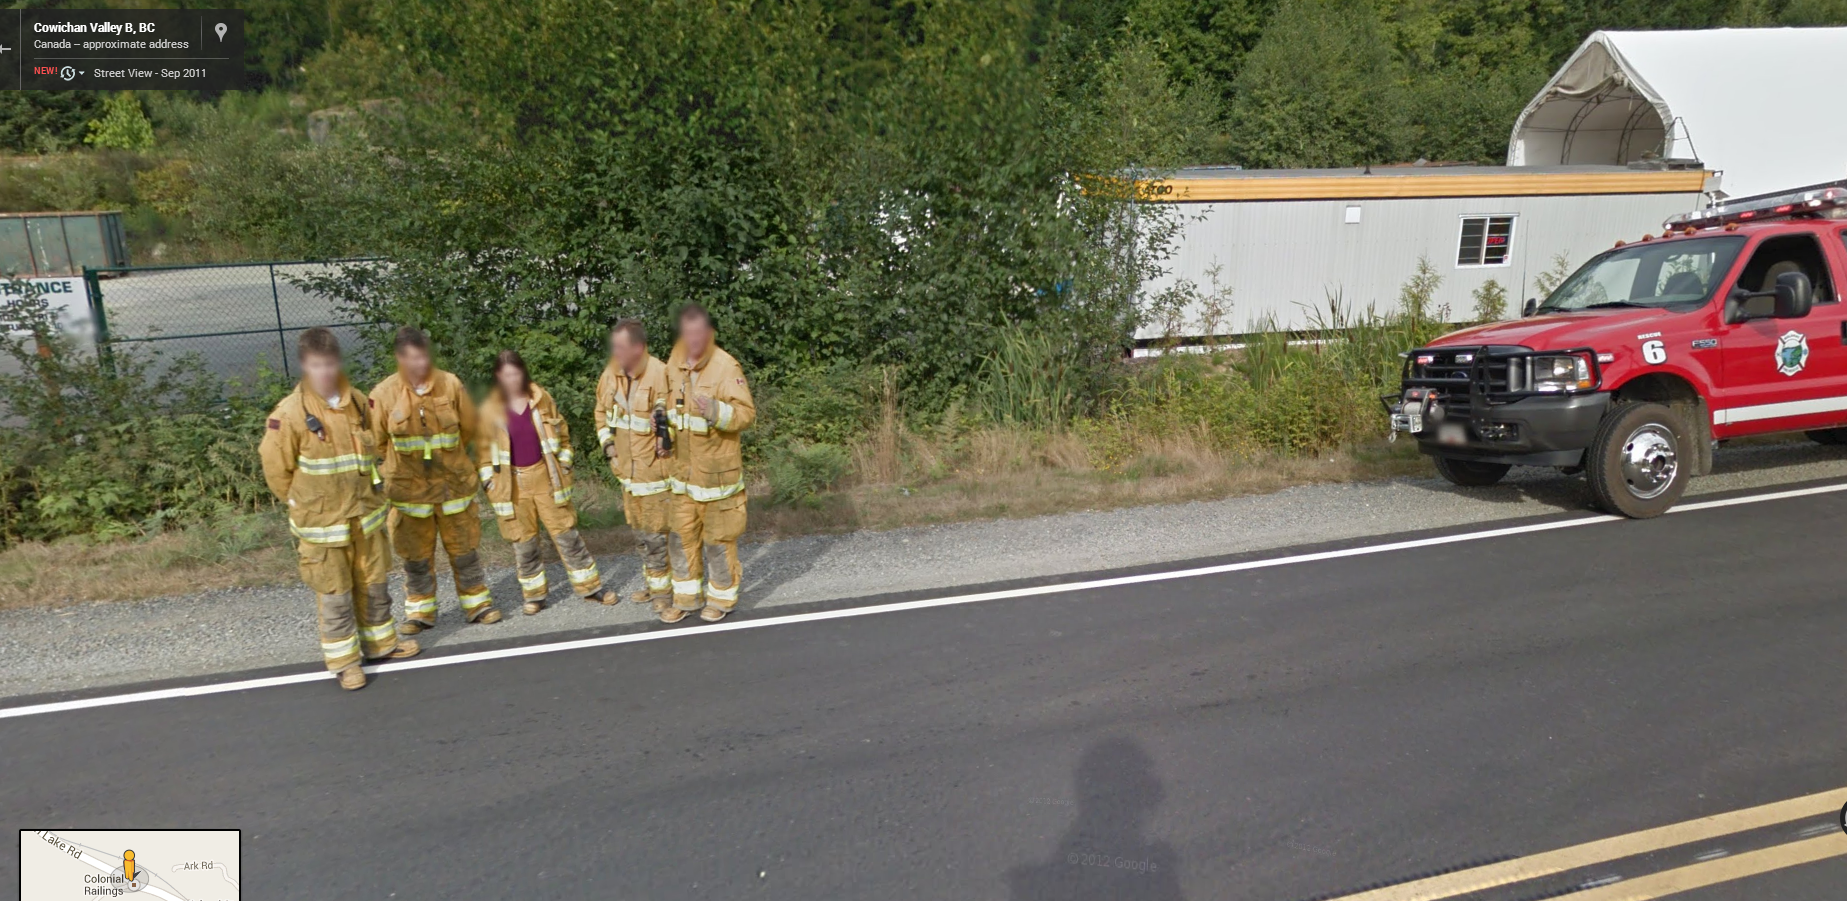 Funny street views on google maps hot girls wallpaper for Goodl